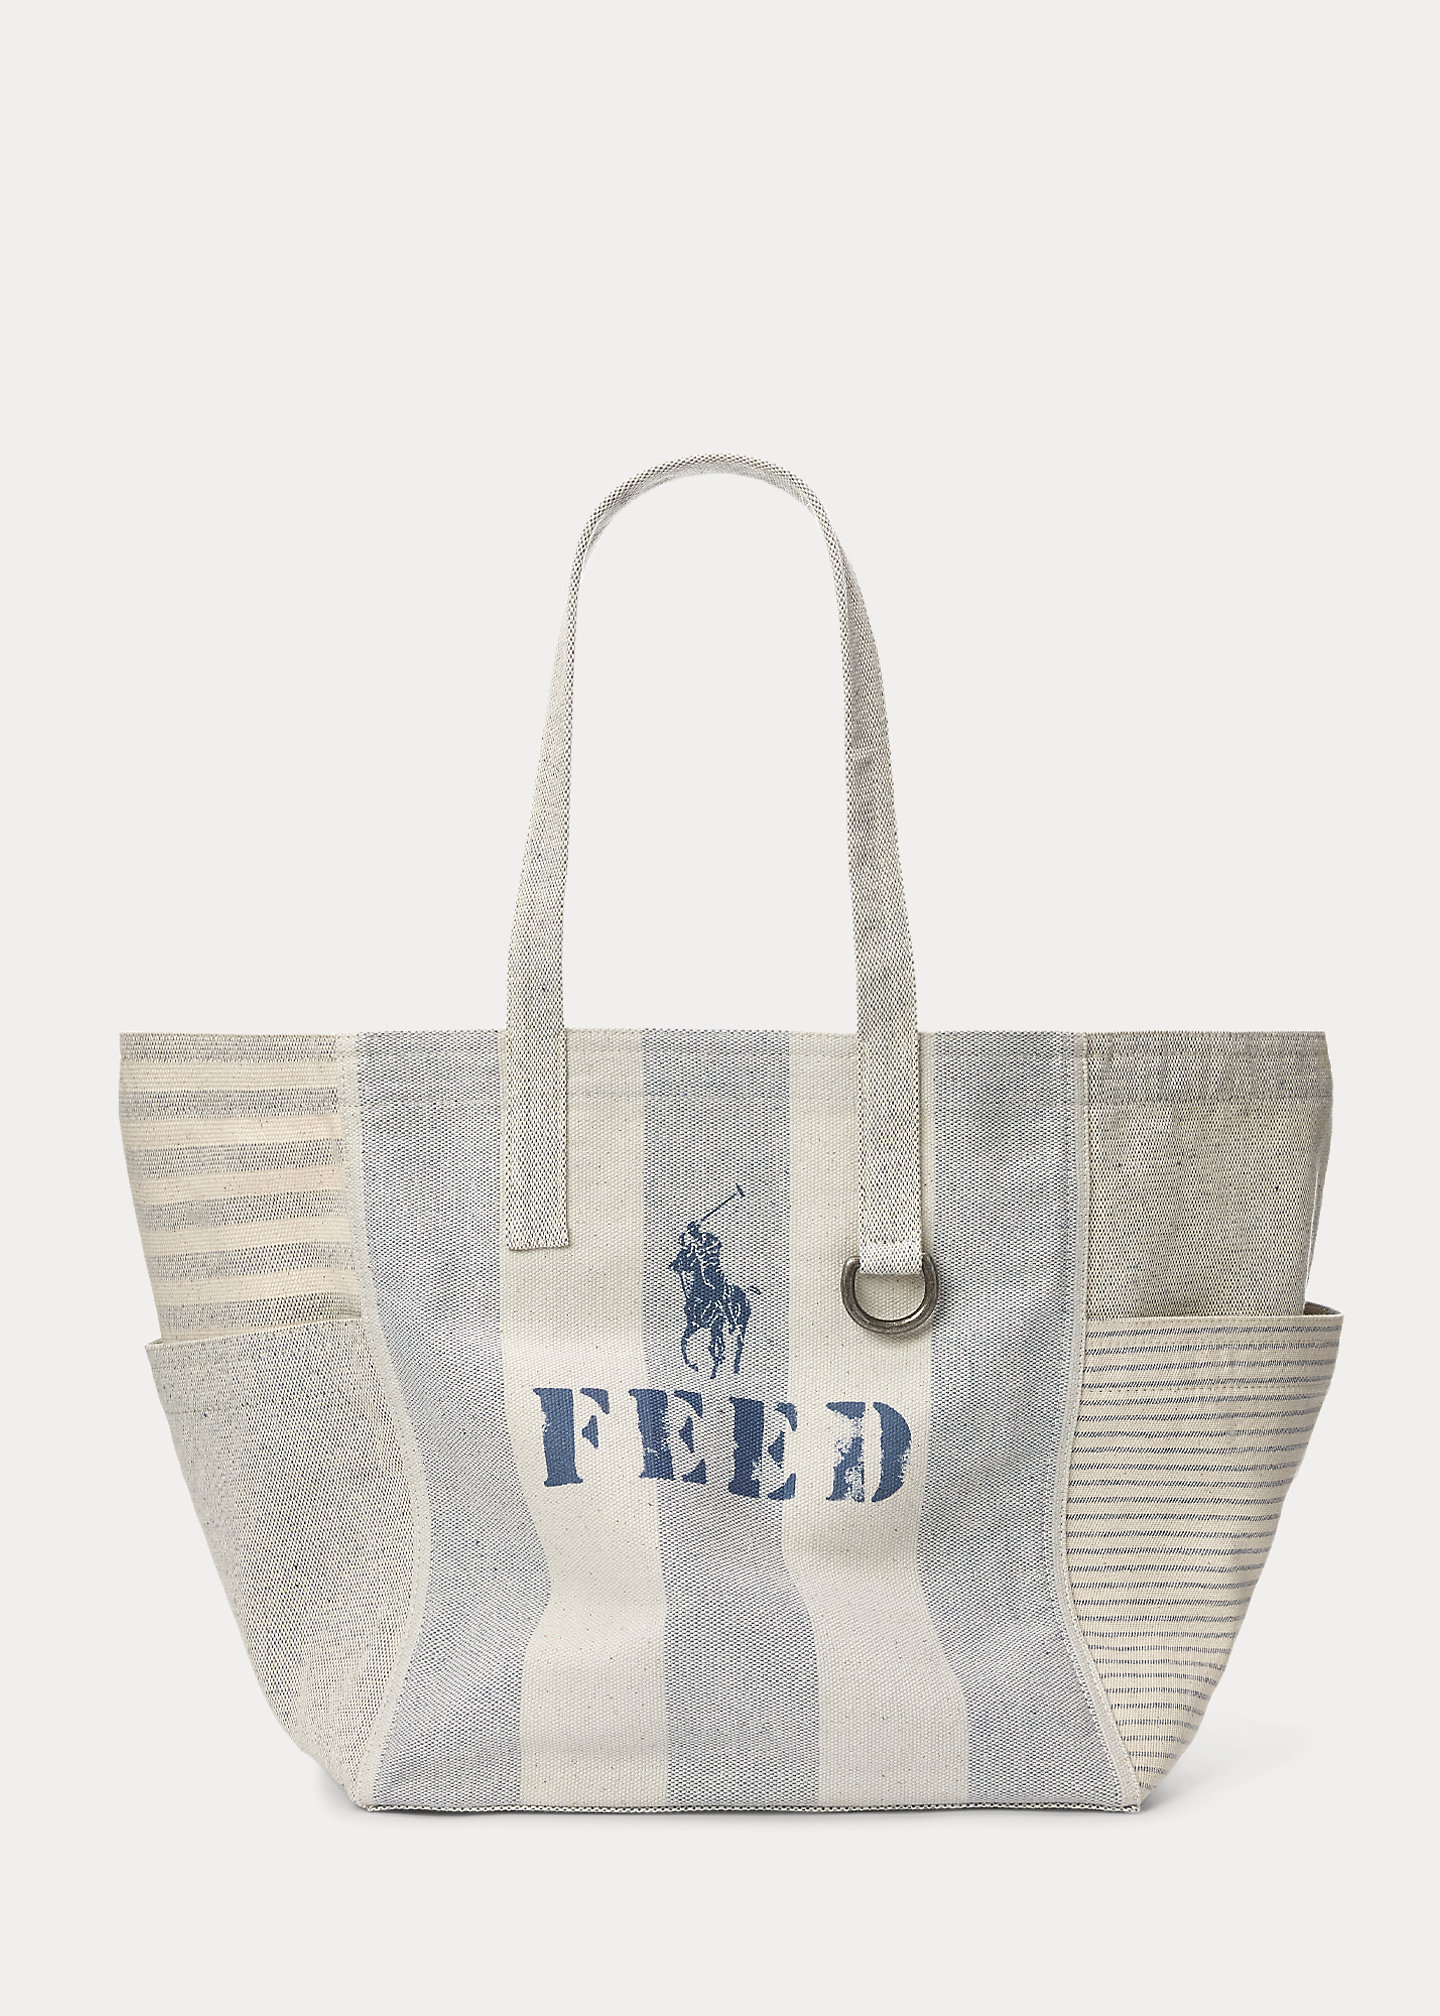 PoloRalphLauren Polo x FEED Tote Bag